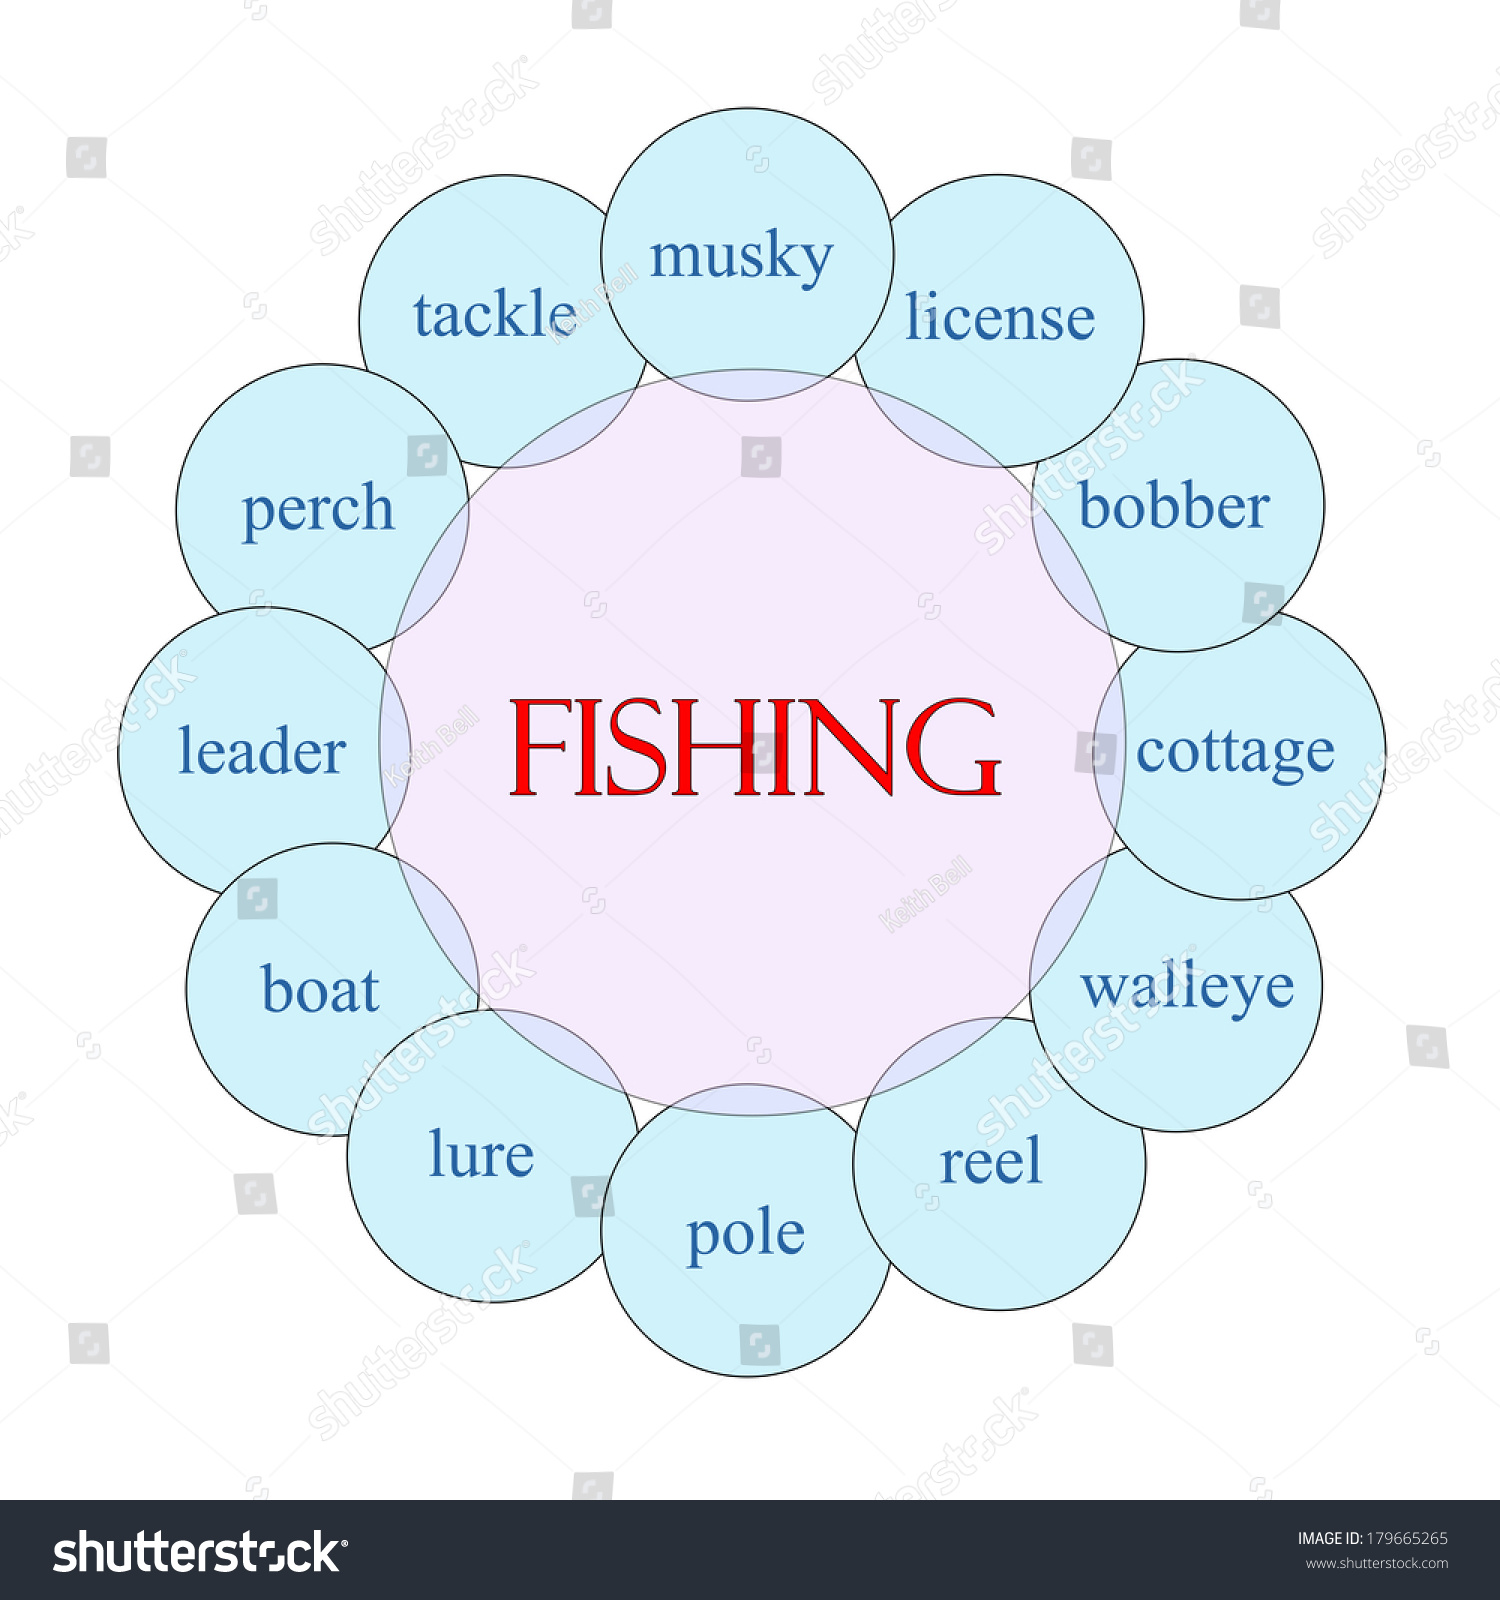 stock photo fishing concept circular diagram in pink and blue with great terms such as musky license bobber 179665265 fishing concept circular diagram pink blue stock illustration